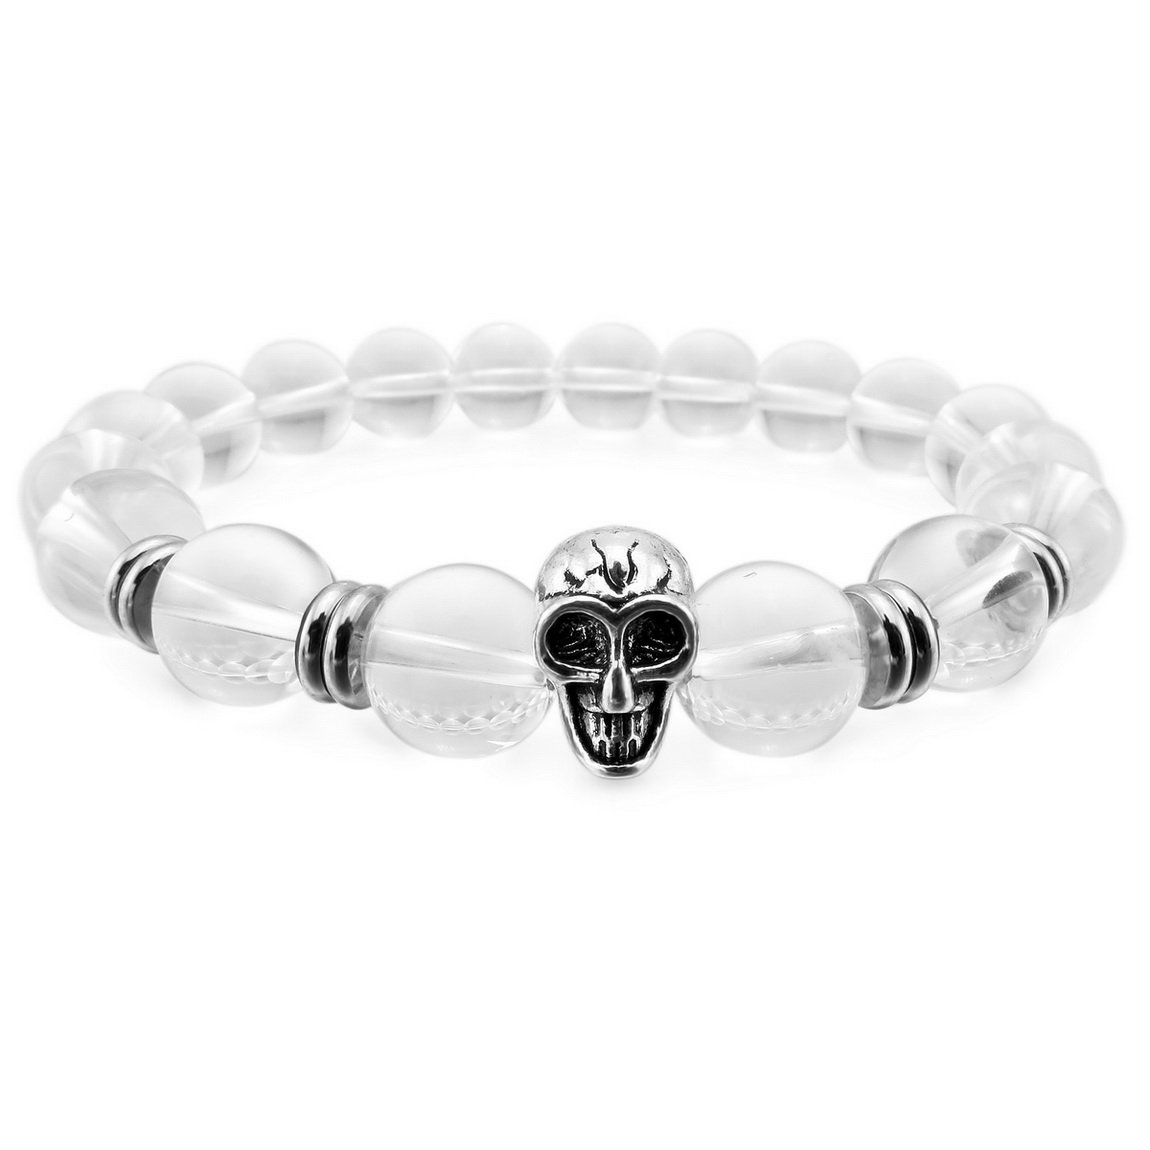 INBLUE Men, Women's 10mm Alloy Energy Bracelet Link Wrist Skull Bead Elastic INBLUE Jewelry mnb1398-10.0